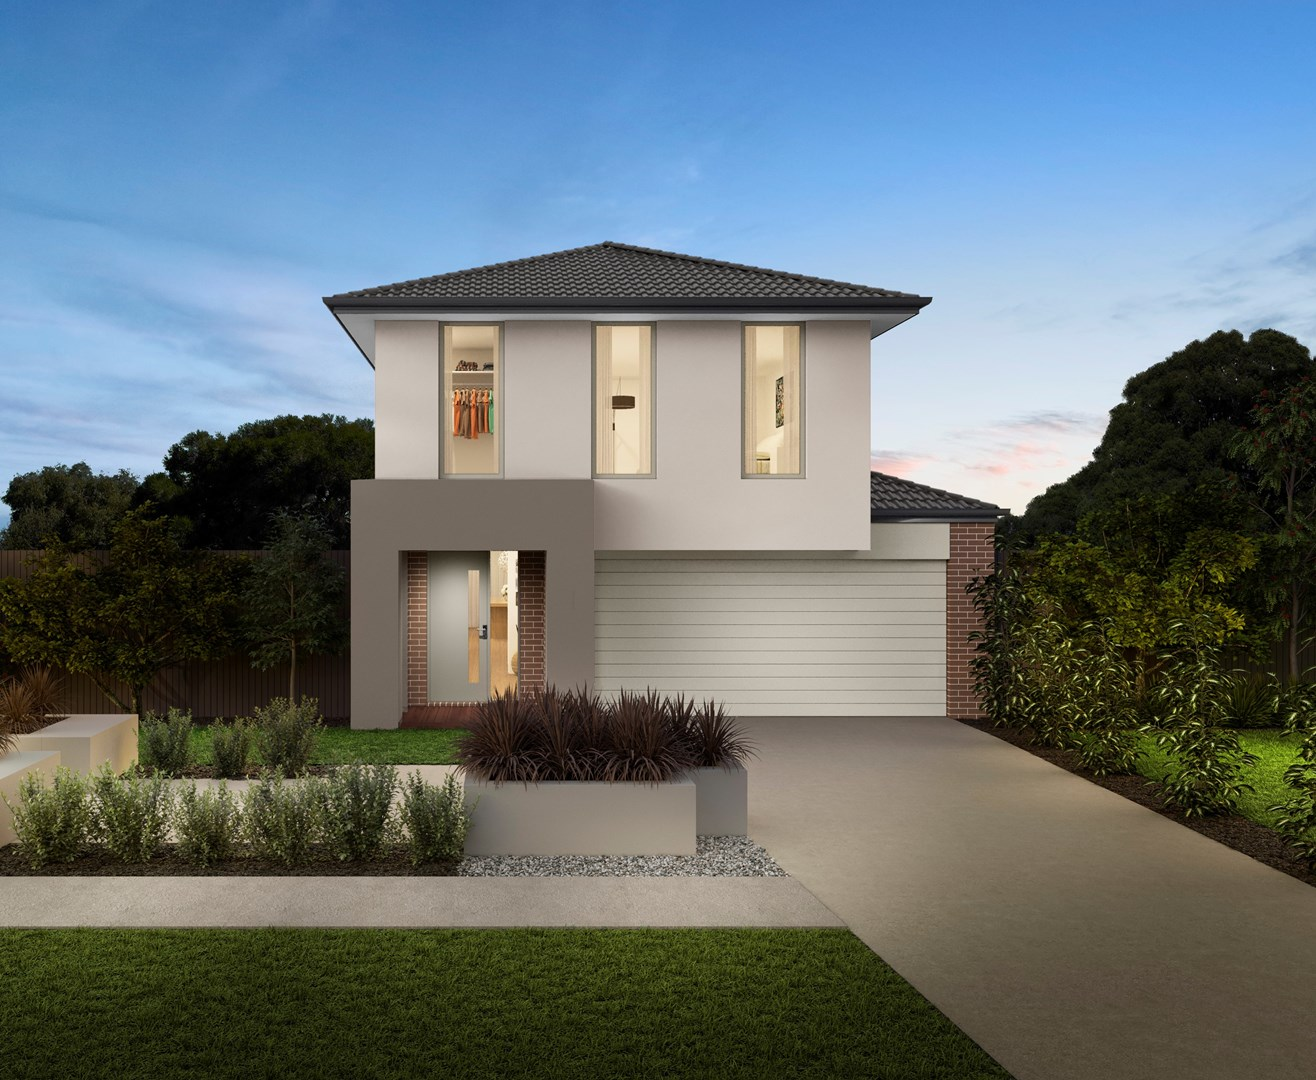 For Sale Lot 161 Lionsgate Cresent Tarneit Vic 3029 Domain